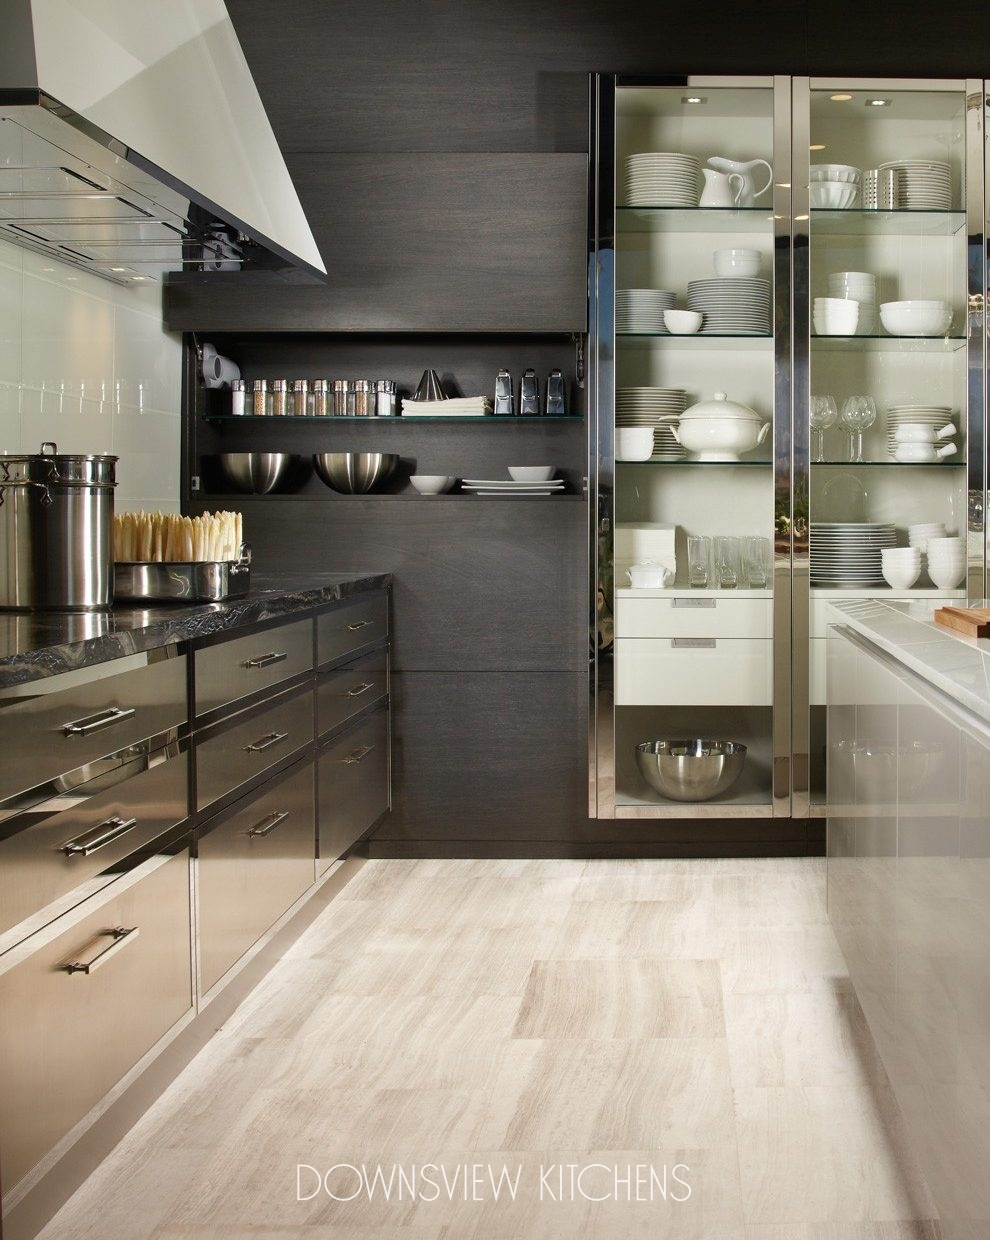 Ss Countertops Modern Reflections - Downsview Kitchens And Fine Custom